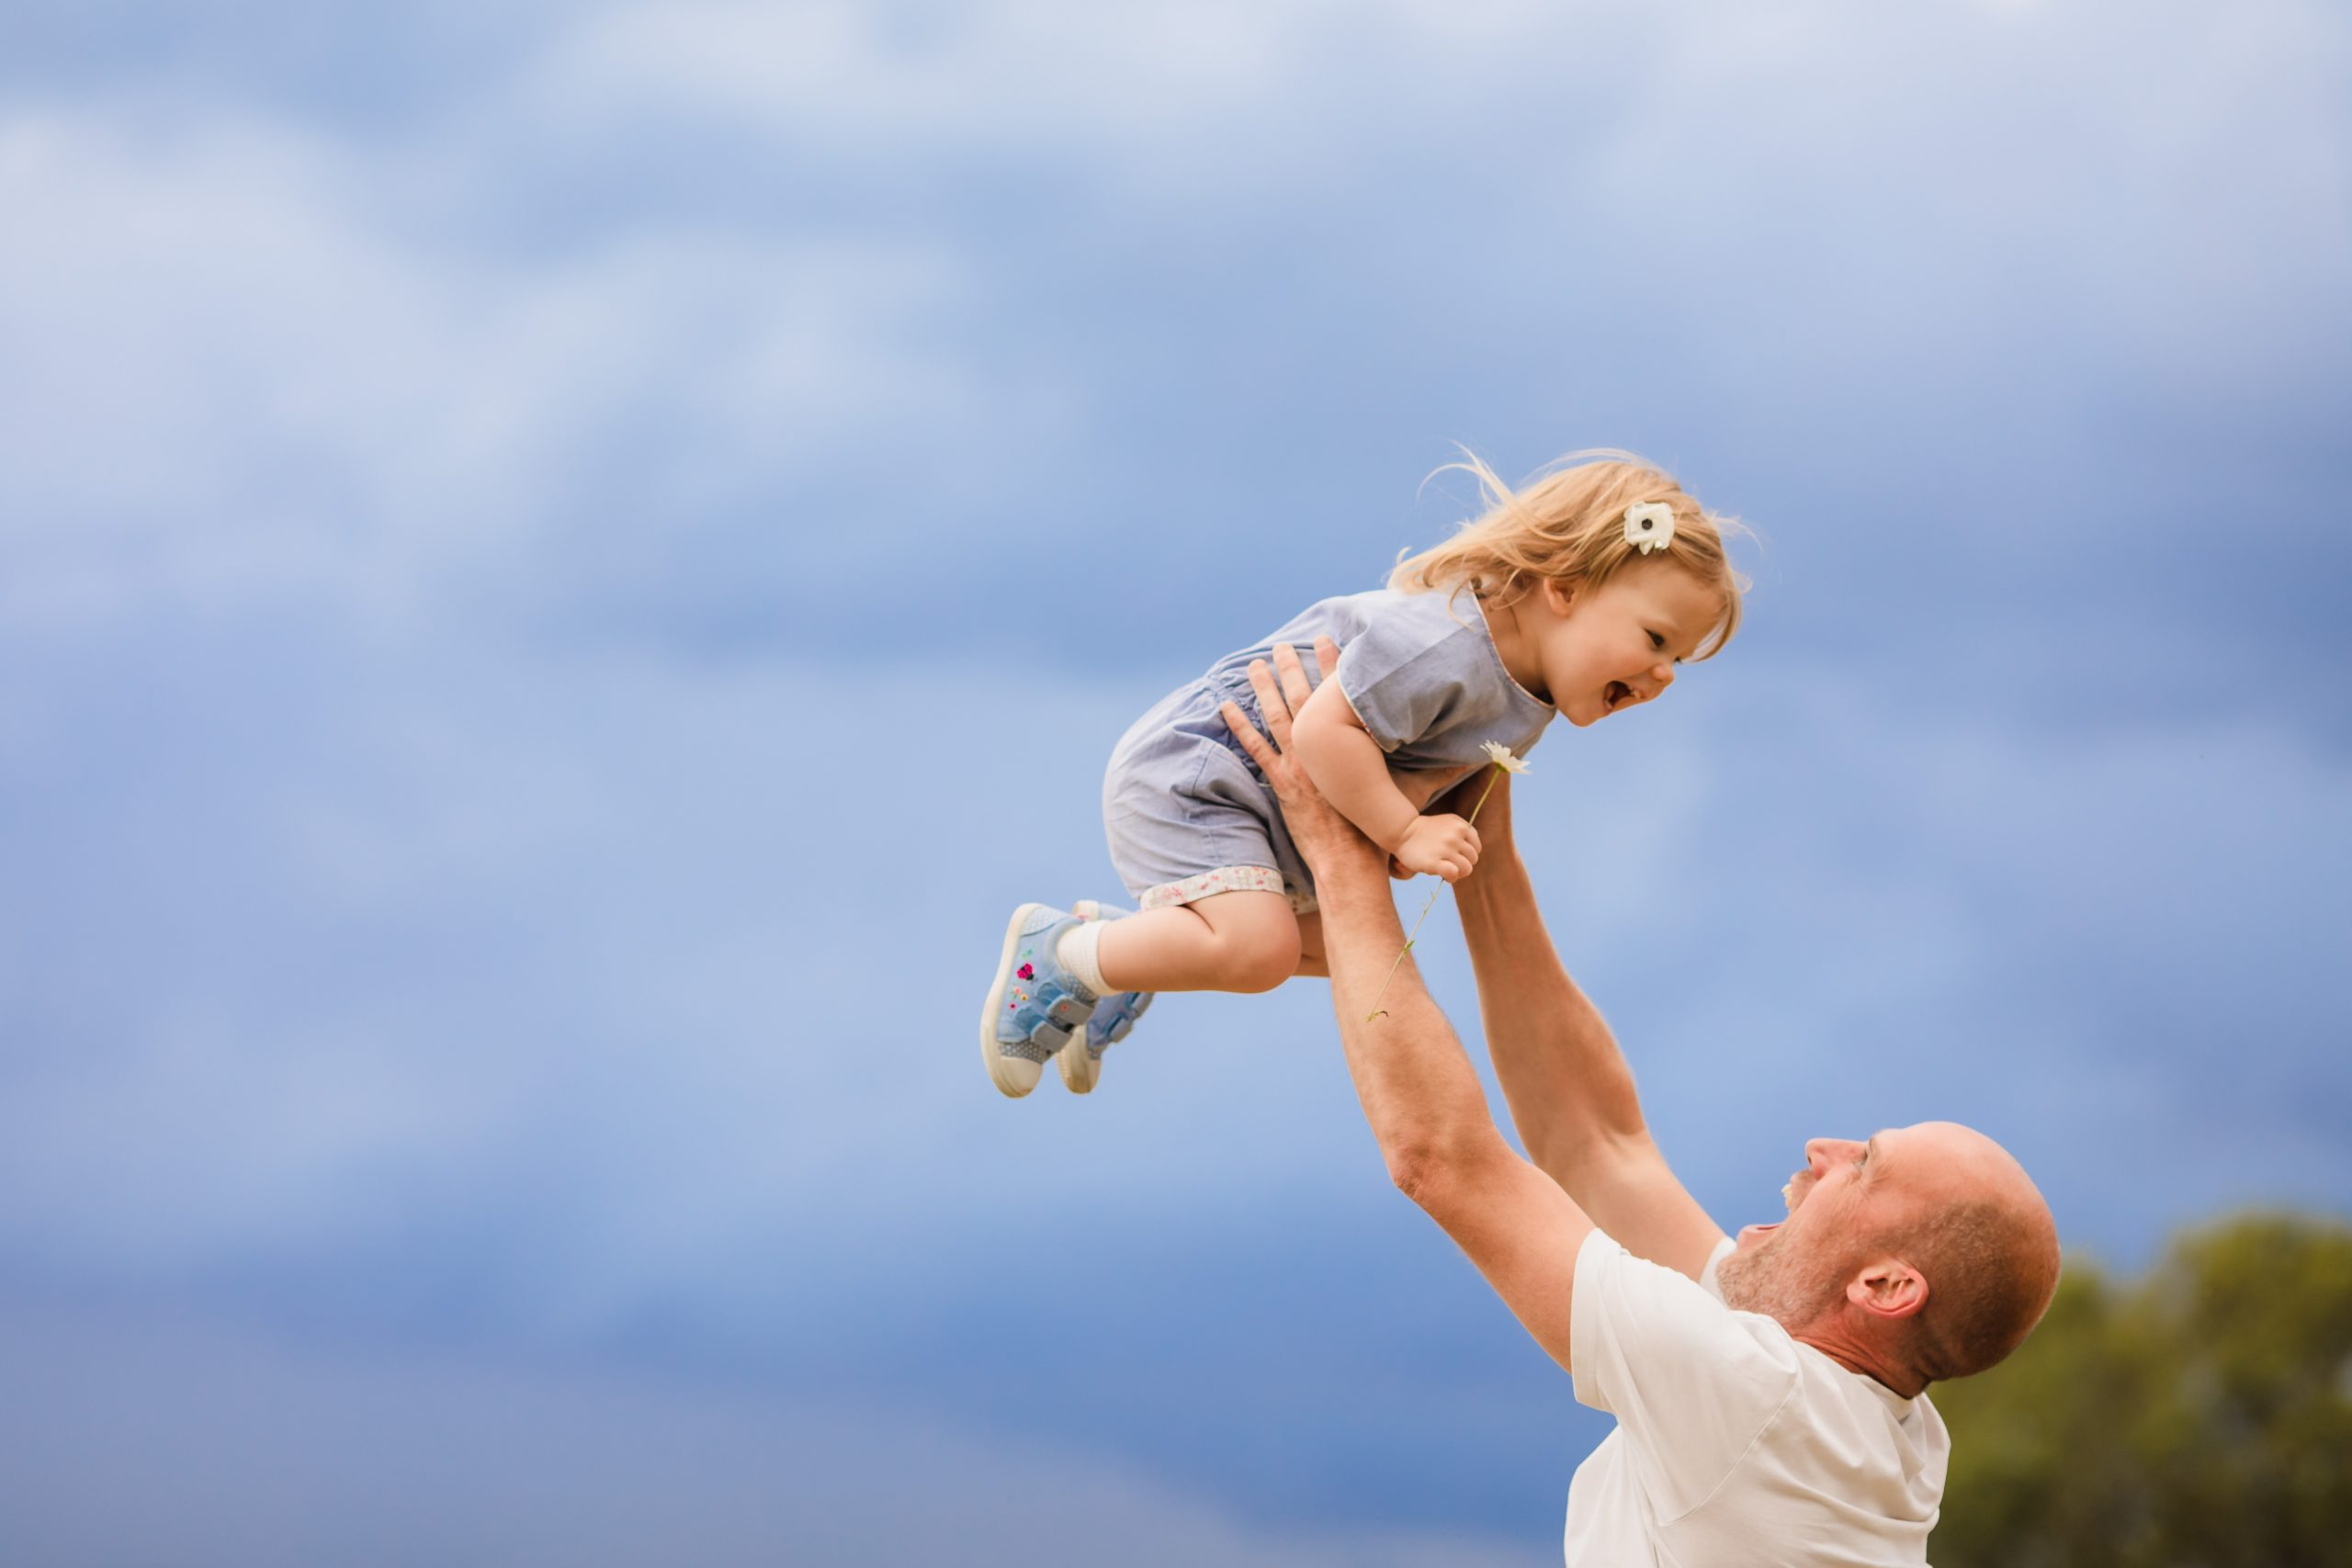 Girl holding daisy while dad throws her in the air